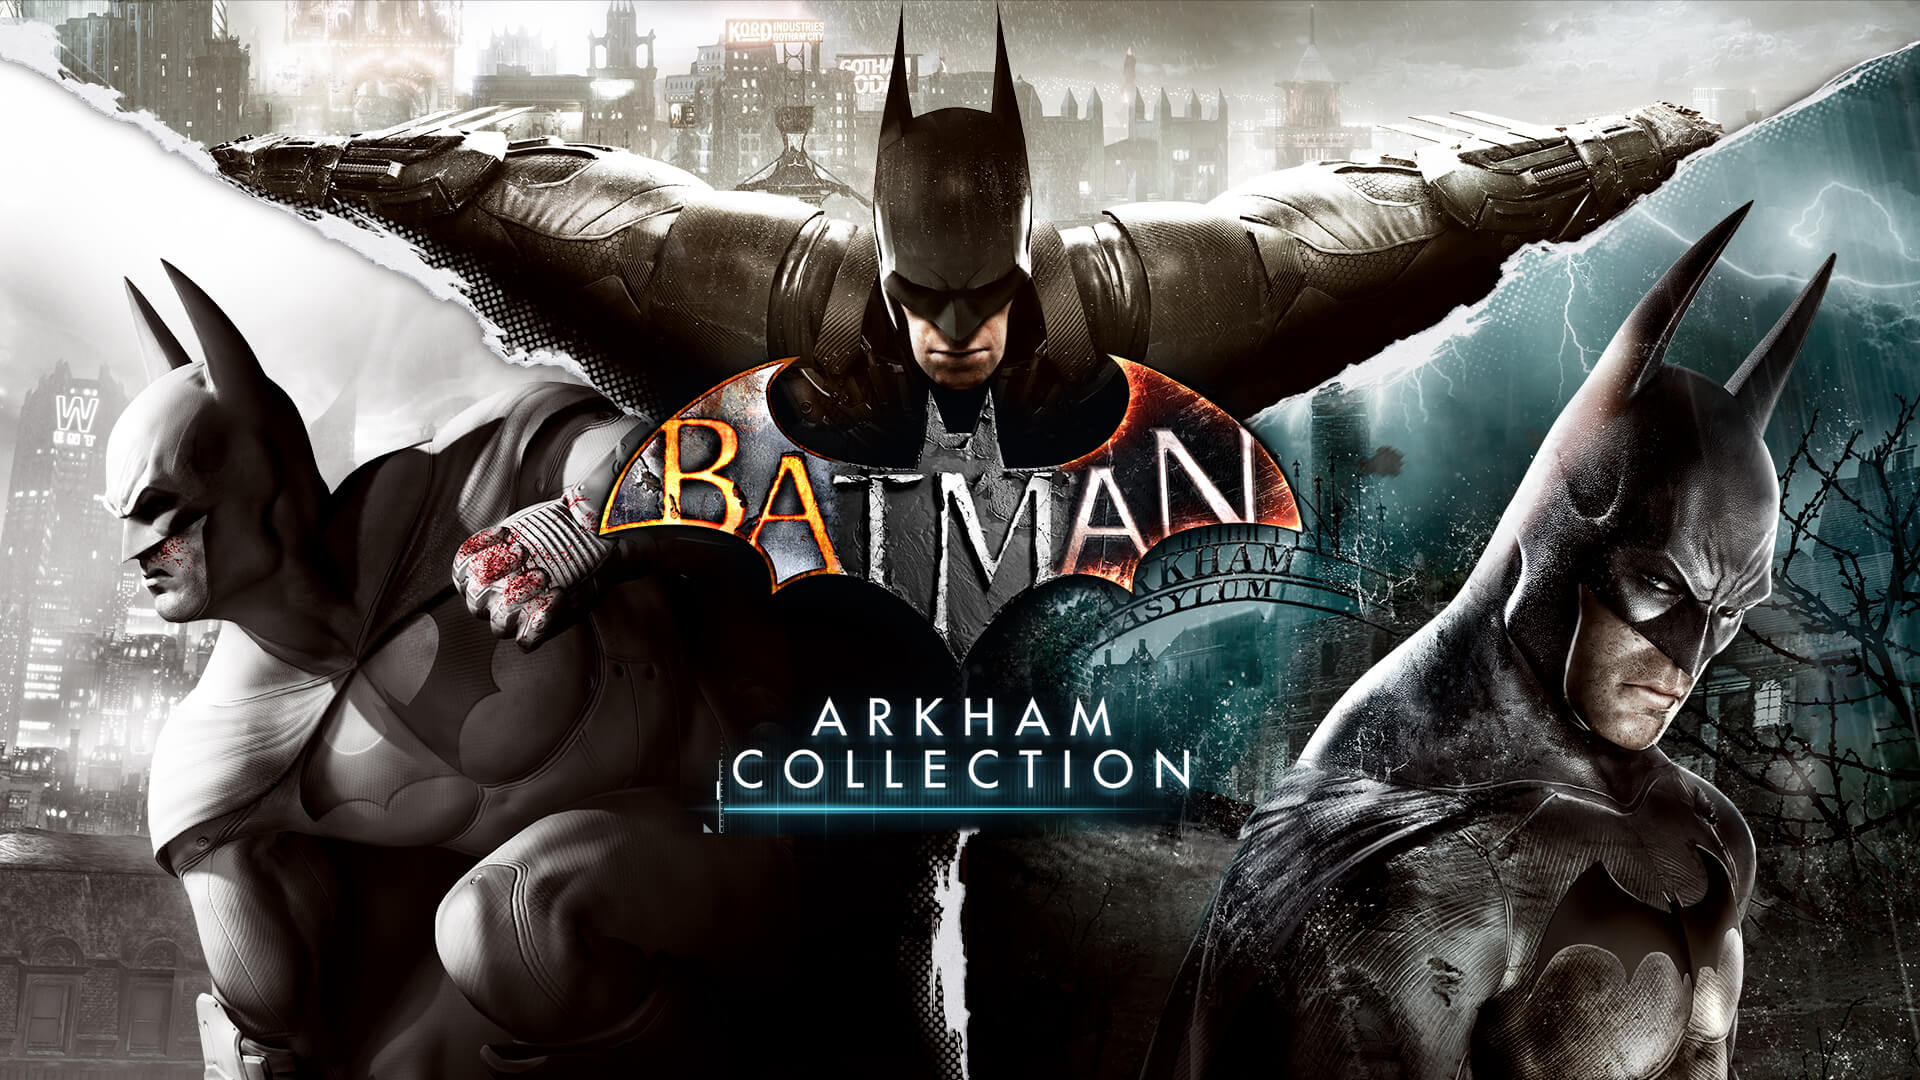 You don't want to miss this solid collection of Batman games developed by Rocksteady Studios